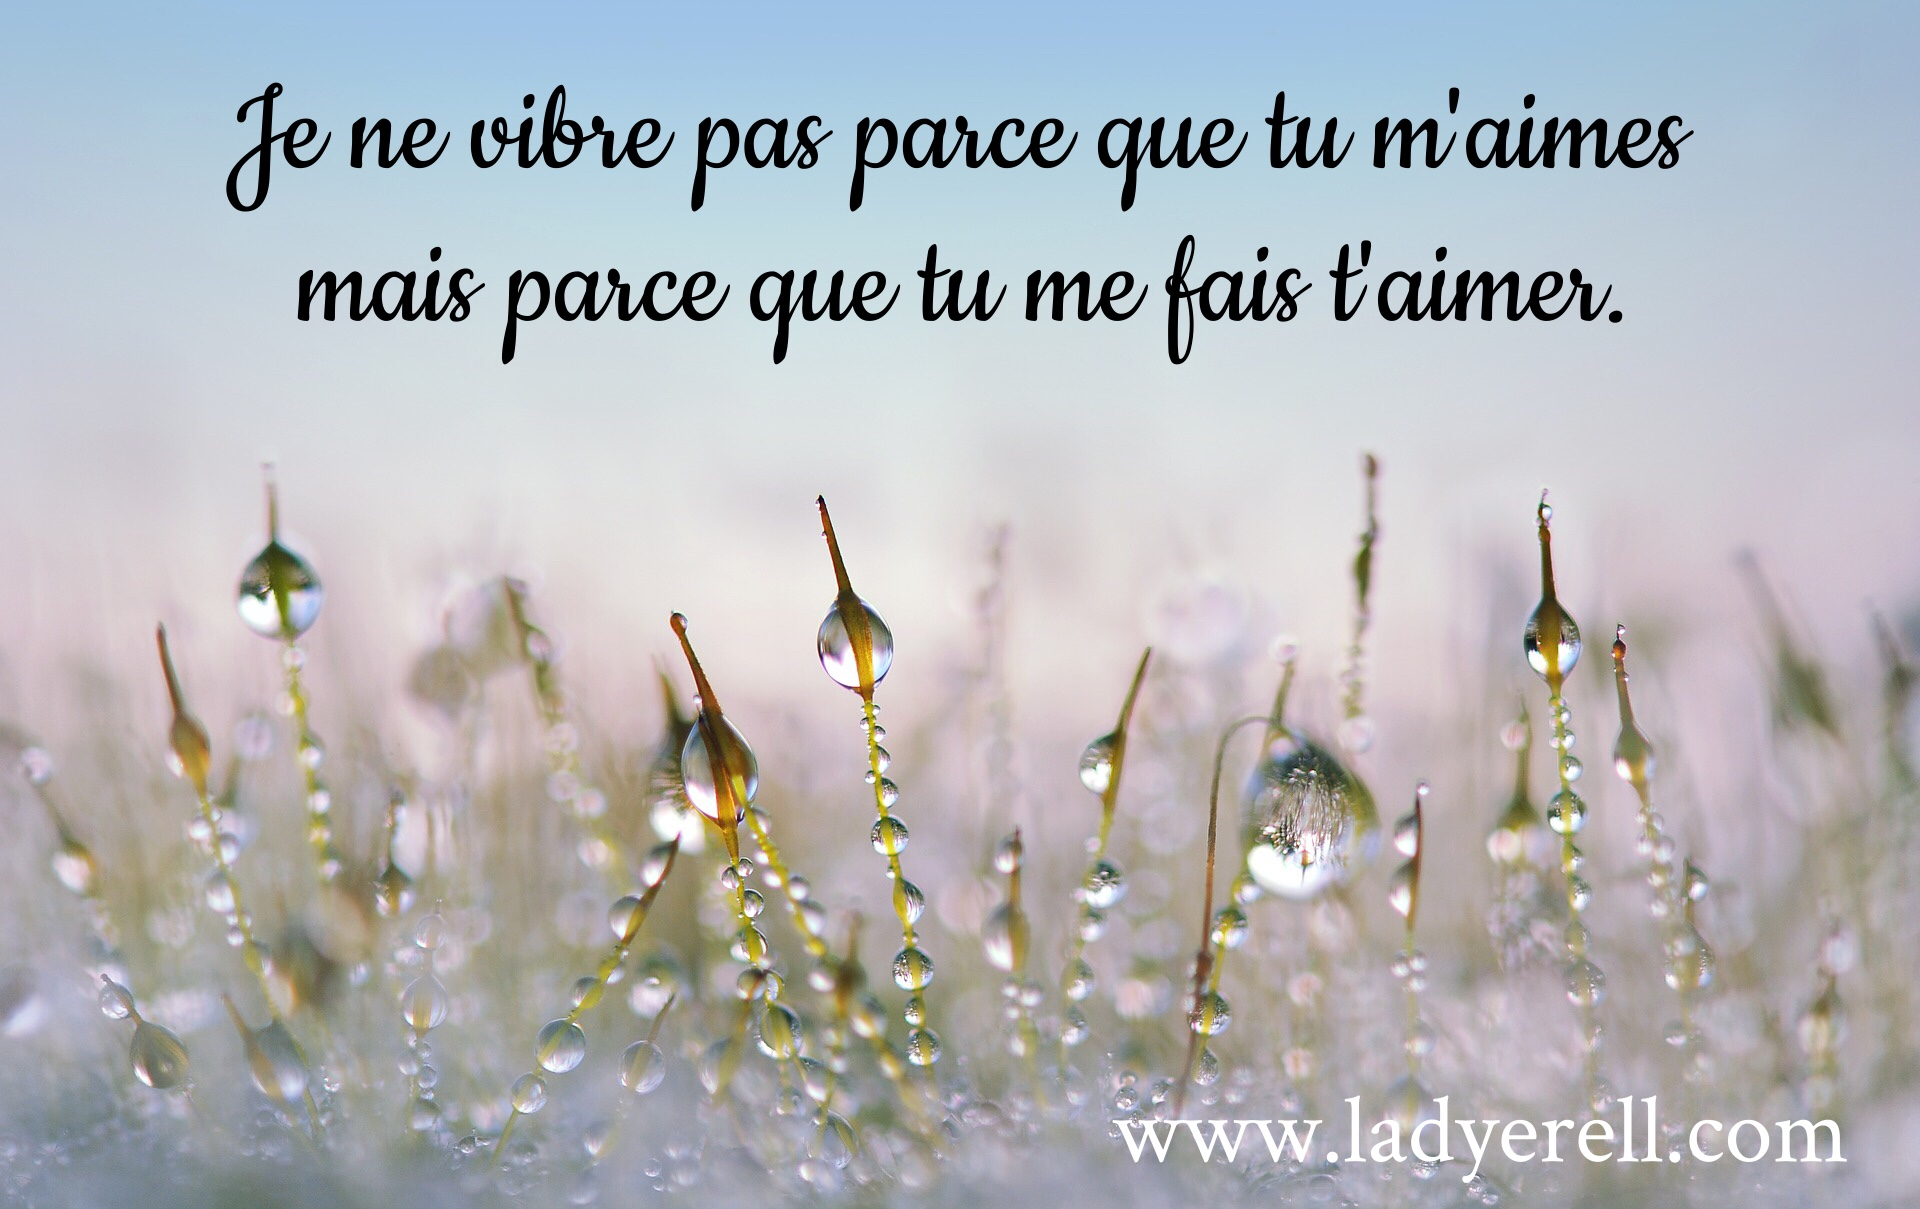 lady erell polyamour confidences intimes amour